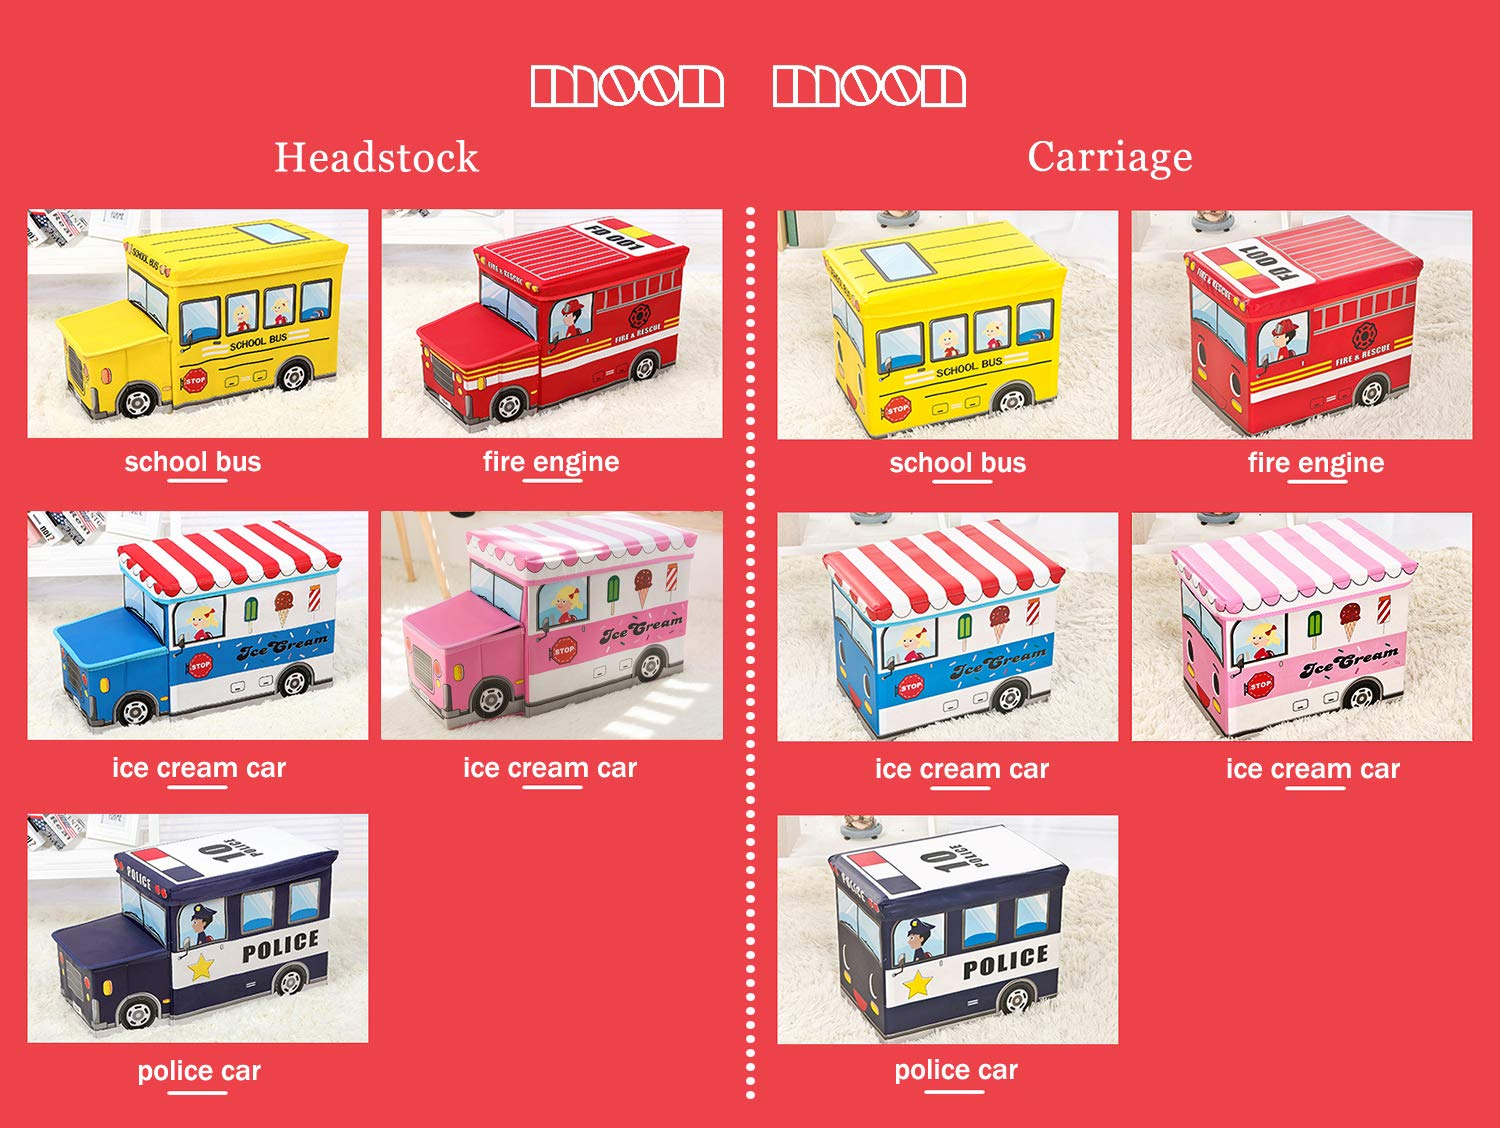 Moon Moon Kids Collapsible Toy Storage Organizer, Toy Box Combination Folding Storage for Kids Bedroom, Kids Toys, Folding Stool, Storage Stool, Creative Collection ,Two Piece Set,Fire Truck